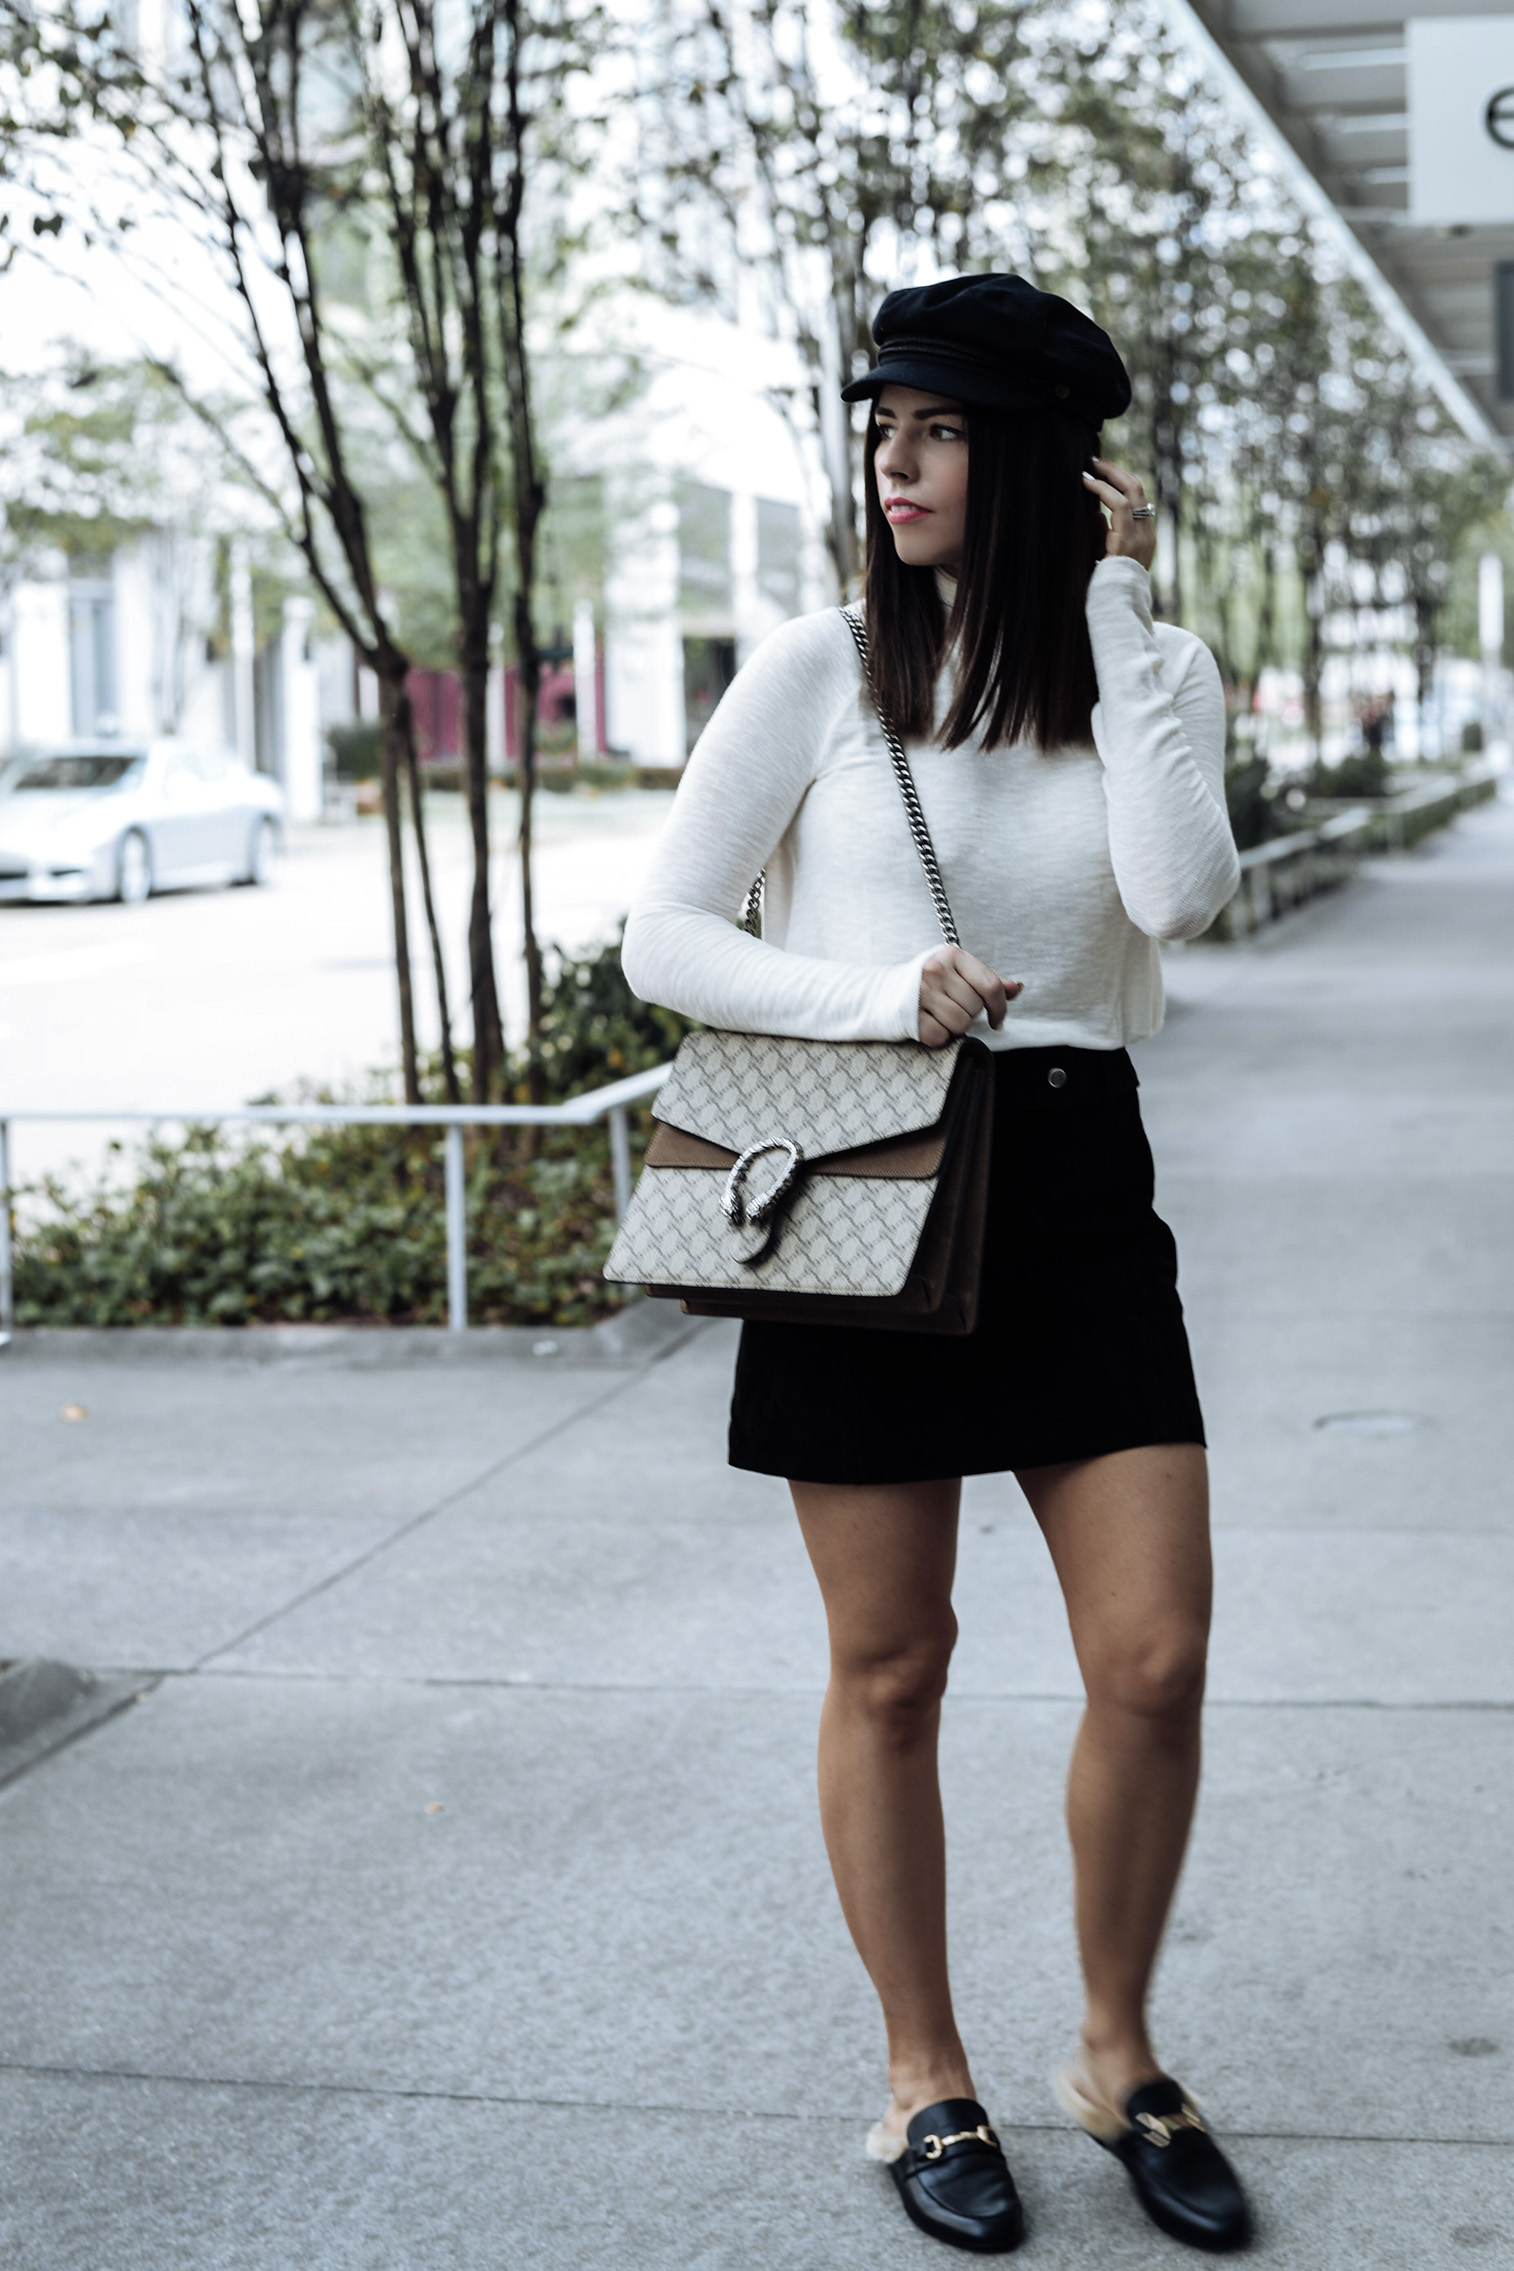 Fall staples | Click to shop | Streetstyle blogger | Weekend Snuggle Turtleneck | Suede mini skirt from Zara (also love this one) | Large Dionysus Bag | Steve Madden Jill flats | Brixton Fiddler Cap |